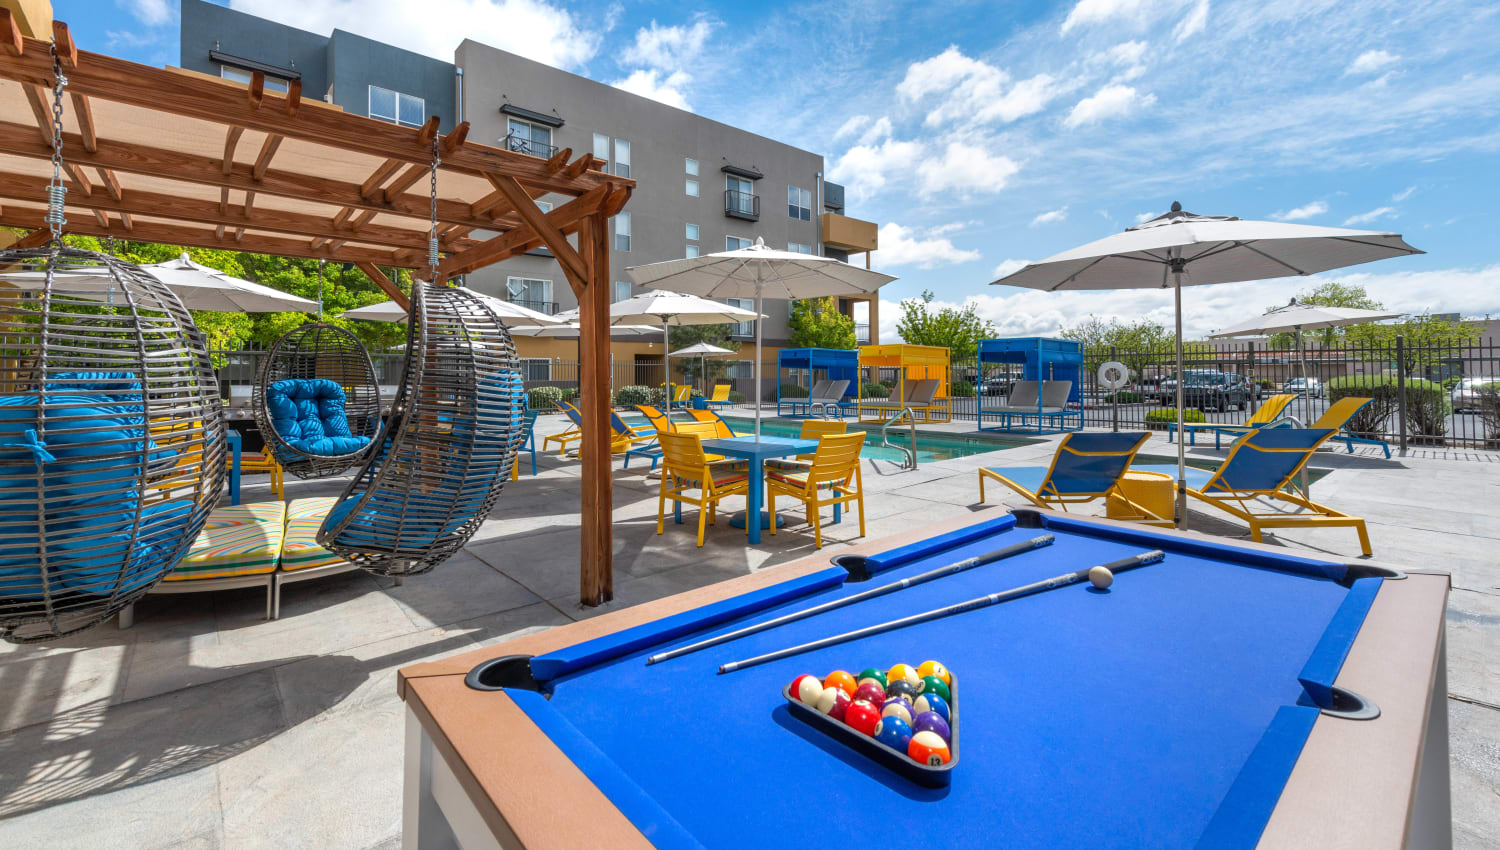 Billiards table at the outdoor lounge at Olympus Solaire in Albuquerque, New Mexico